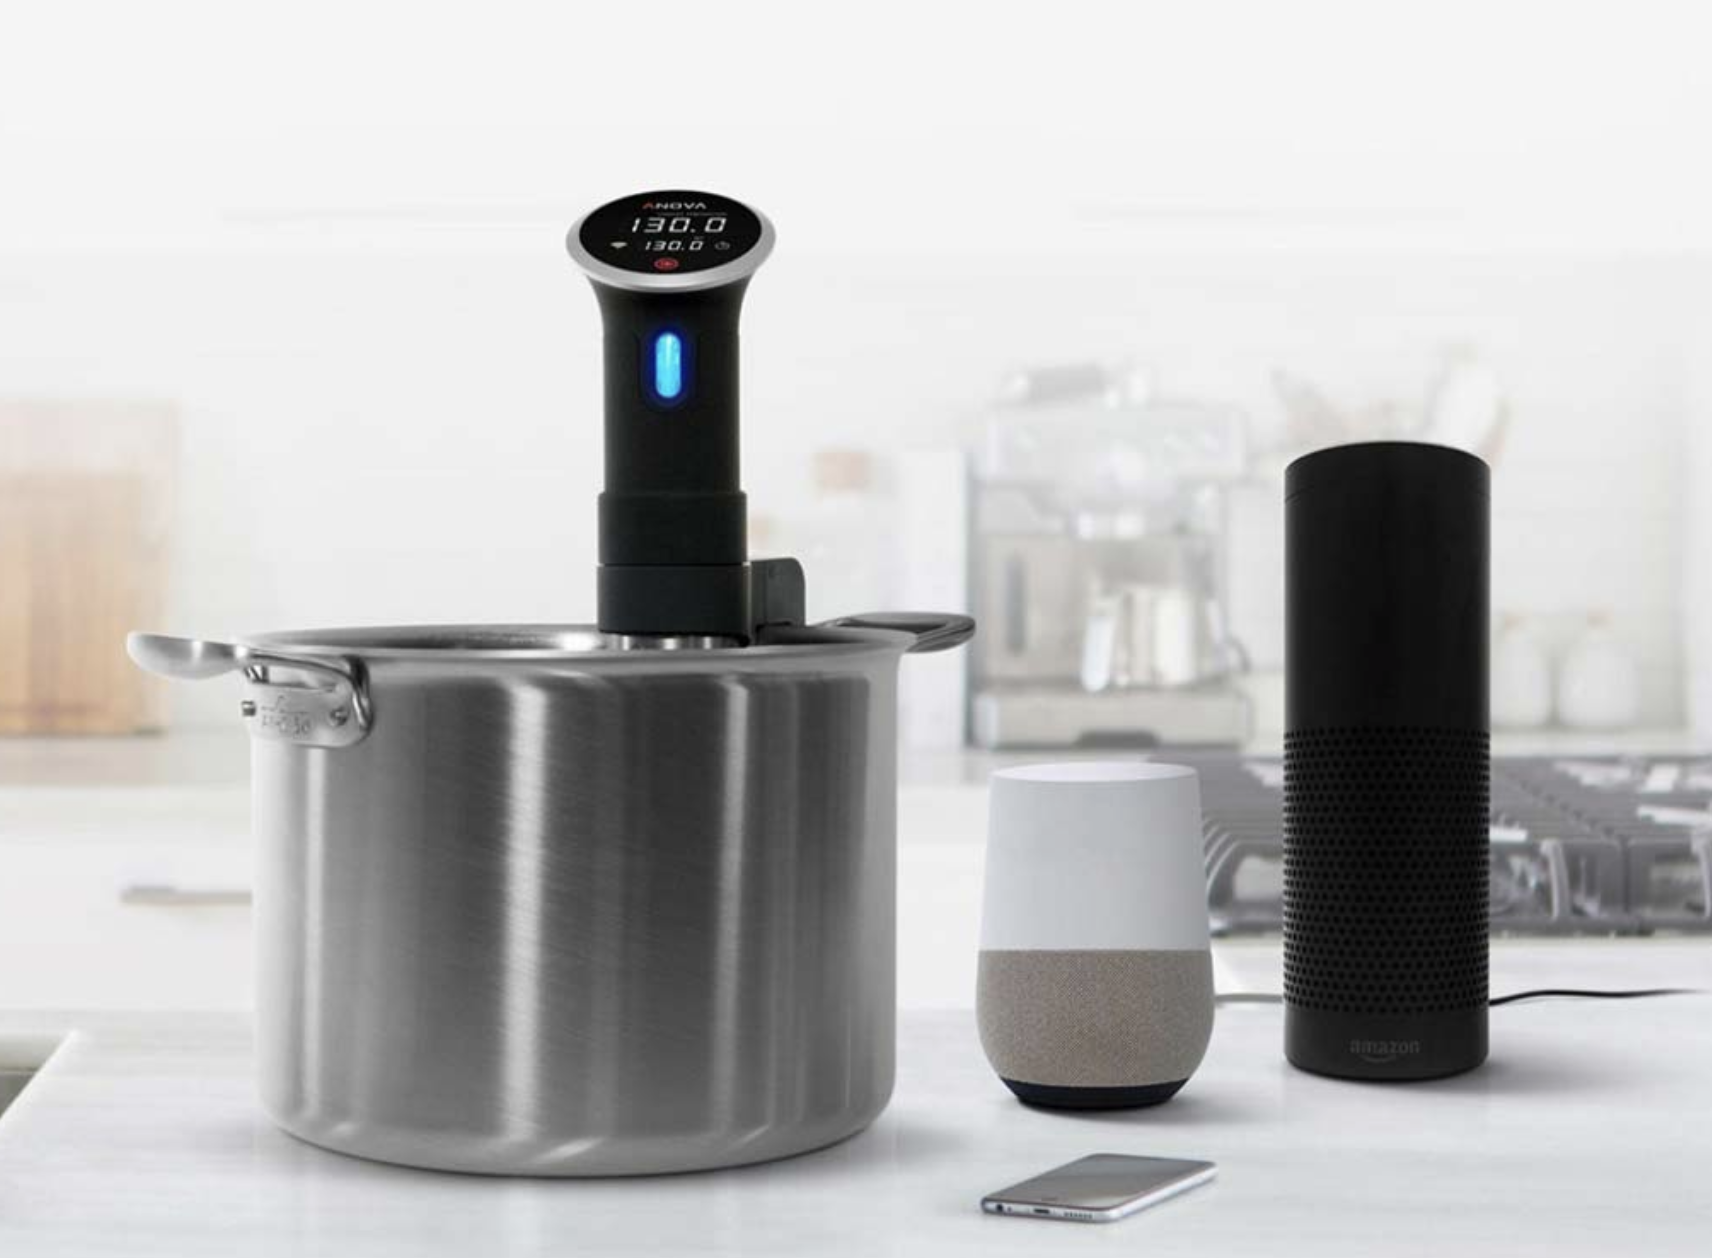 the anova wifi sous vide precision cooker makes cooking easier and hands free.